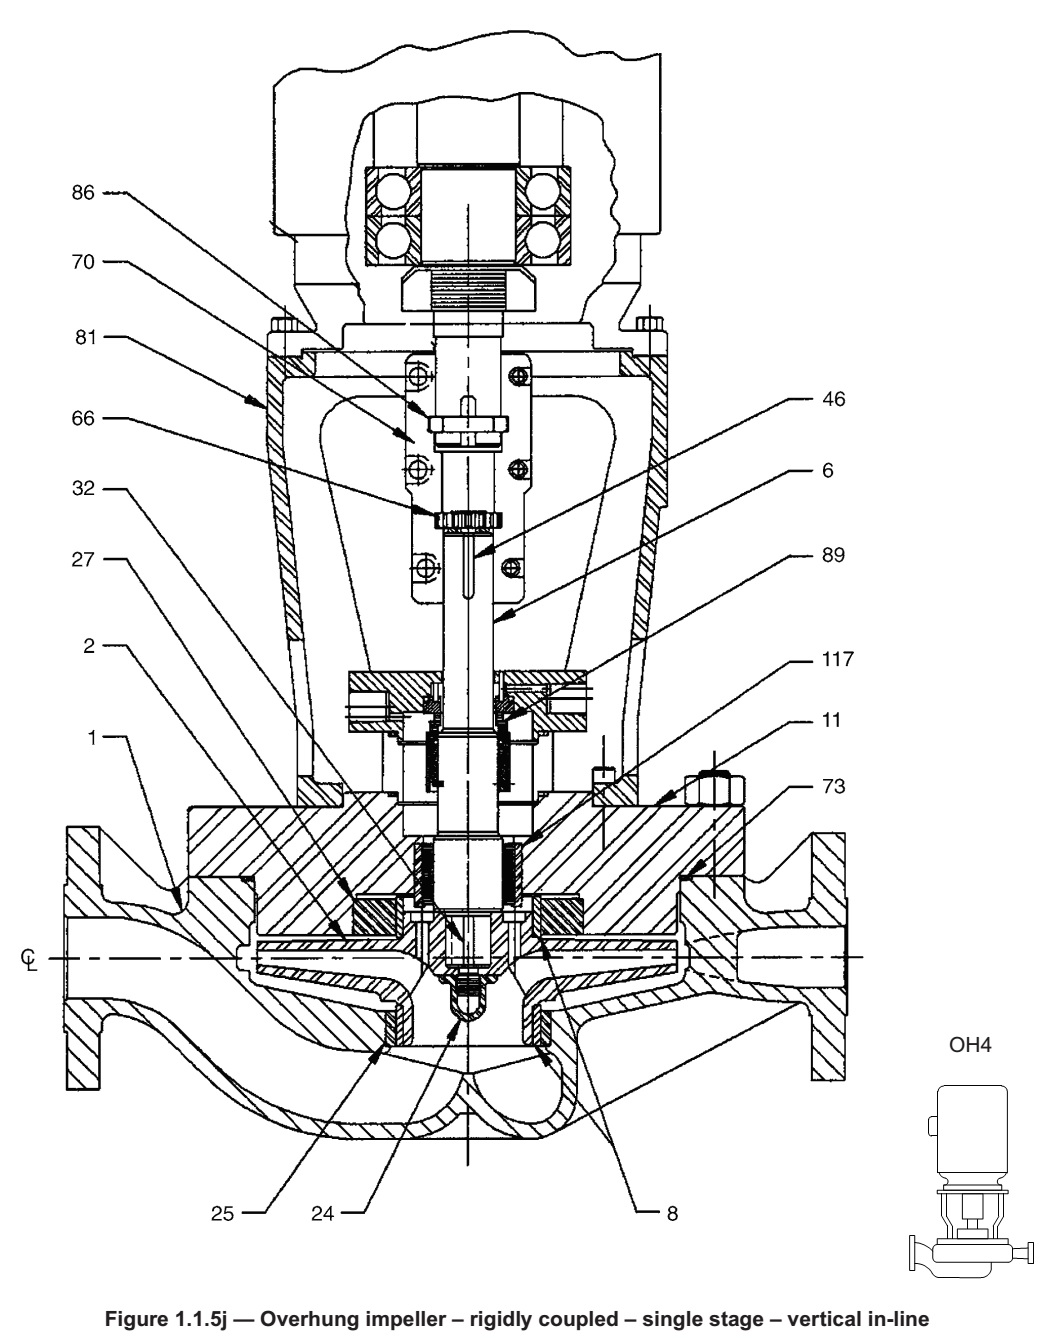 Pumps Motors additionally Cbr 600 F4 Wiring Diagram in addition Jabsco Pump Wiring Diagrams moreover 559840 Sump Pump Intermittently Wont Open Check Valve moreover BilgeBal. on submersible pump system diagram